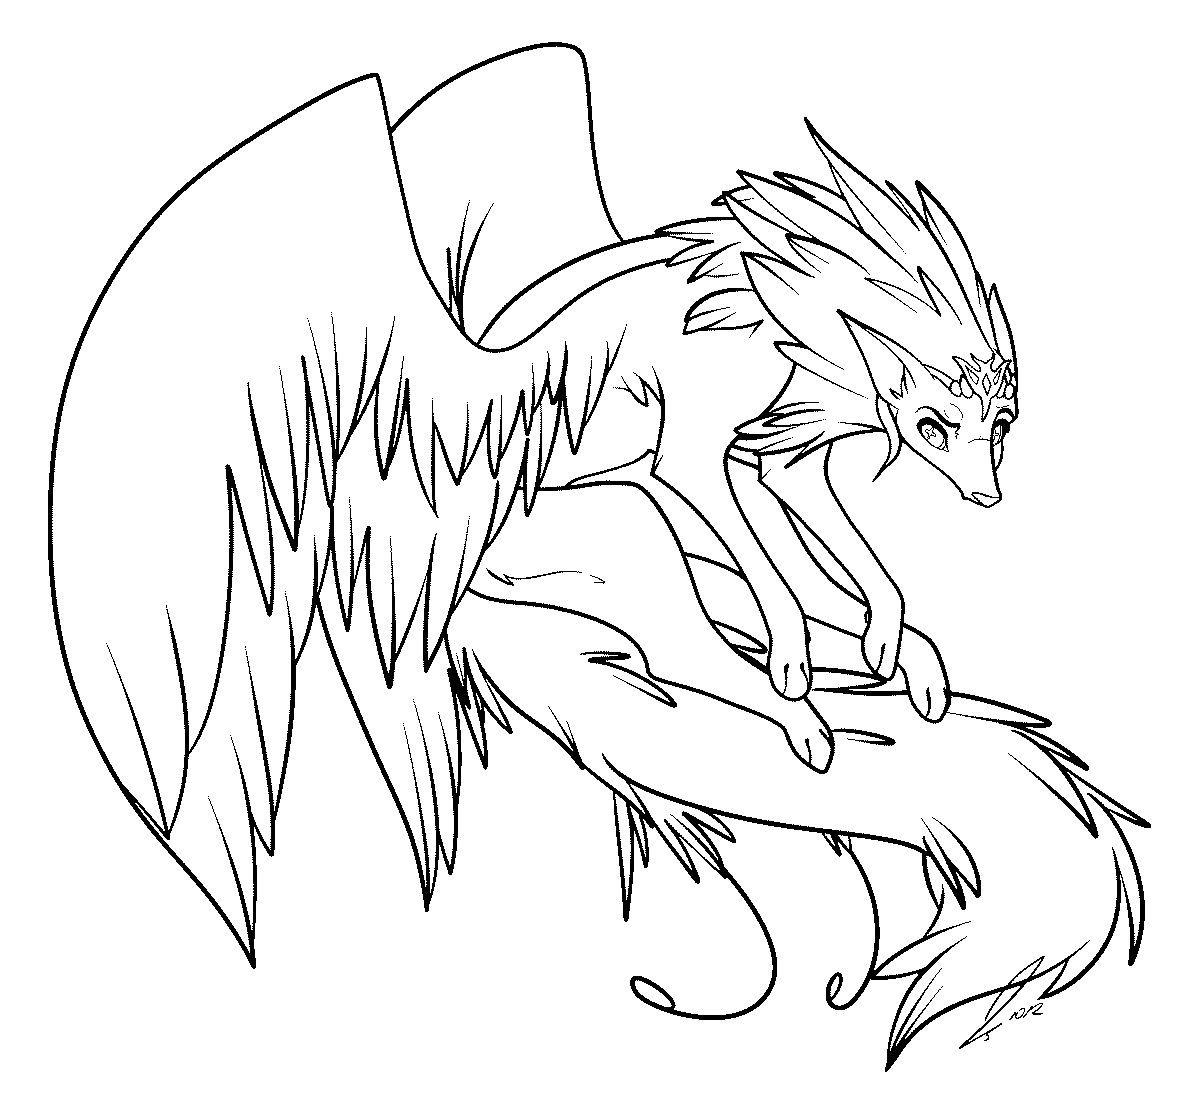 cat with wings coloring pages winged cat coloring page by ioveanimals100 on deviantart with coloring wings cat pages